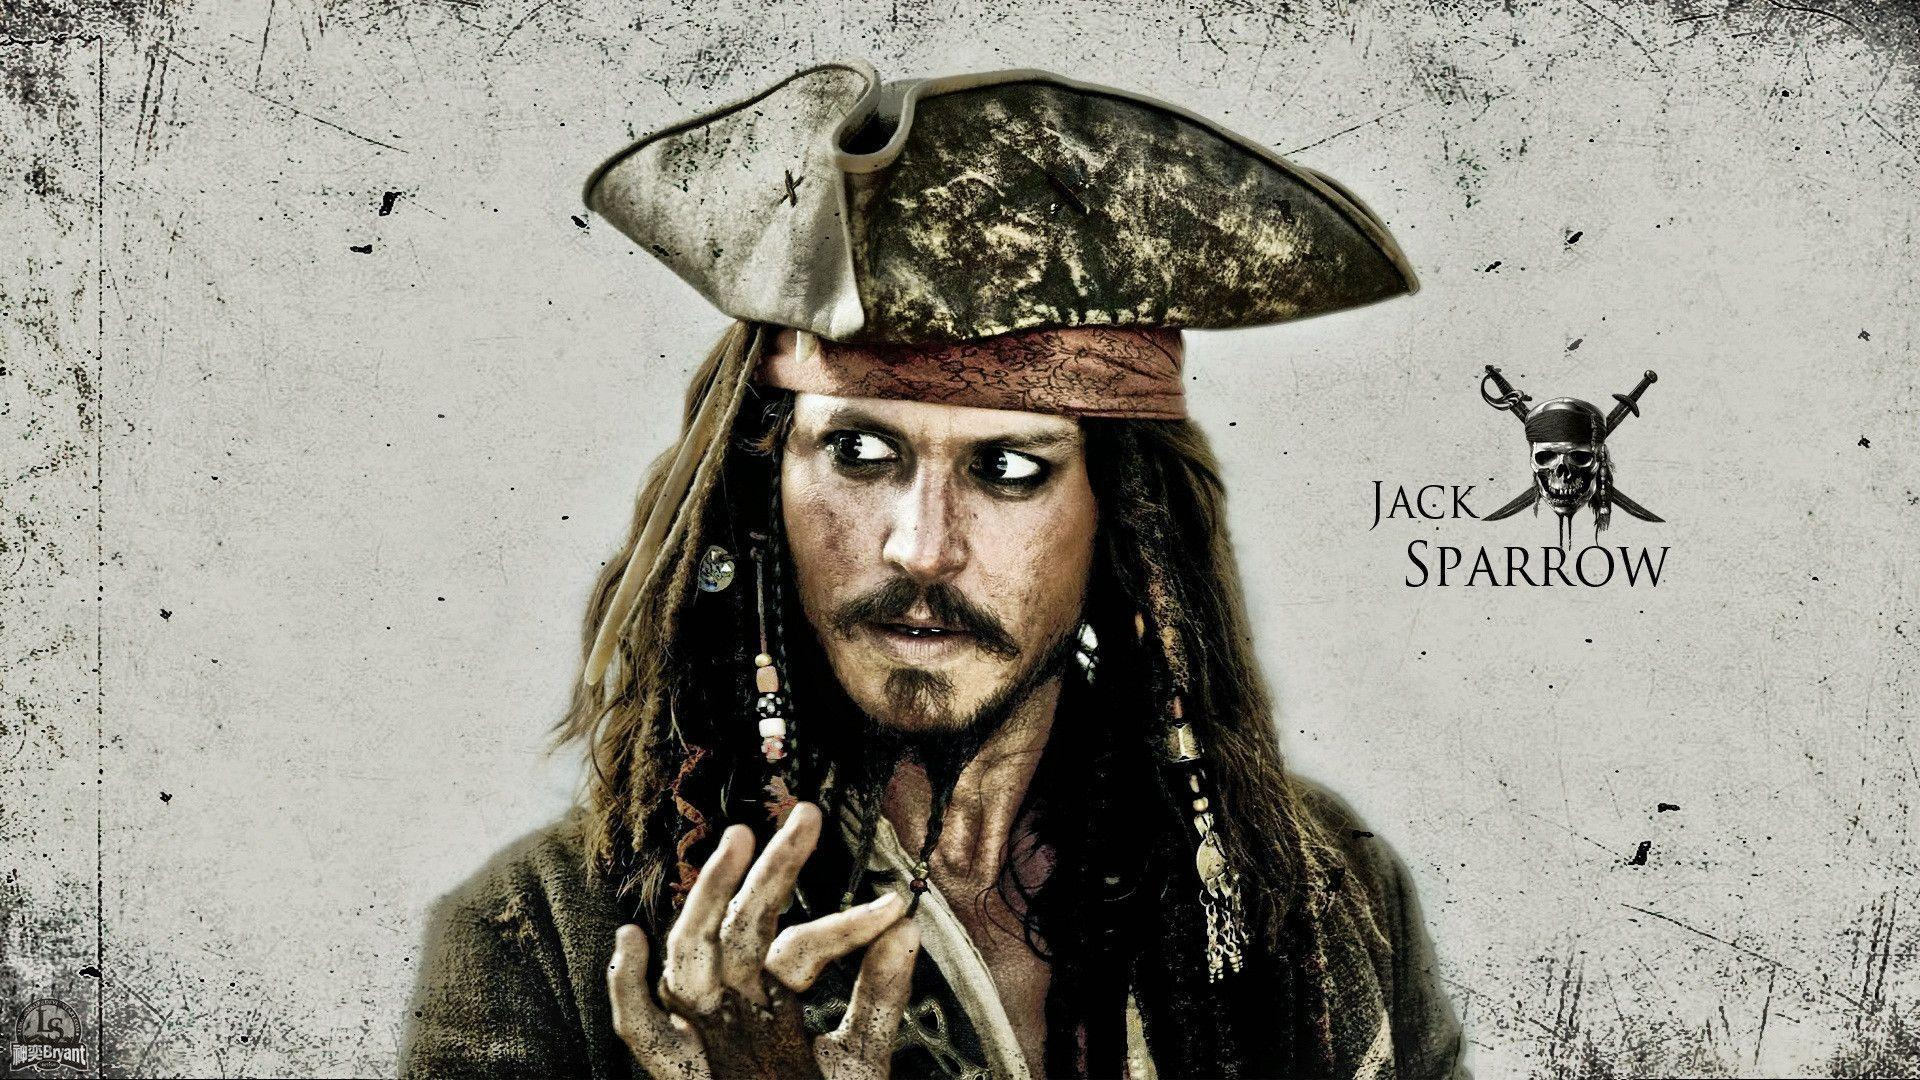 Captain Jack Sparrow Wallpapers - Wallpaper Cave